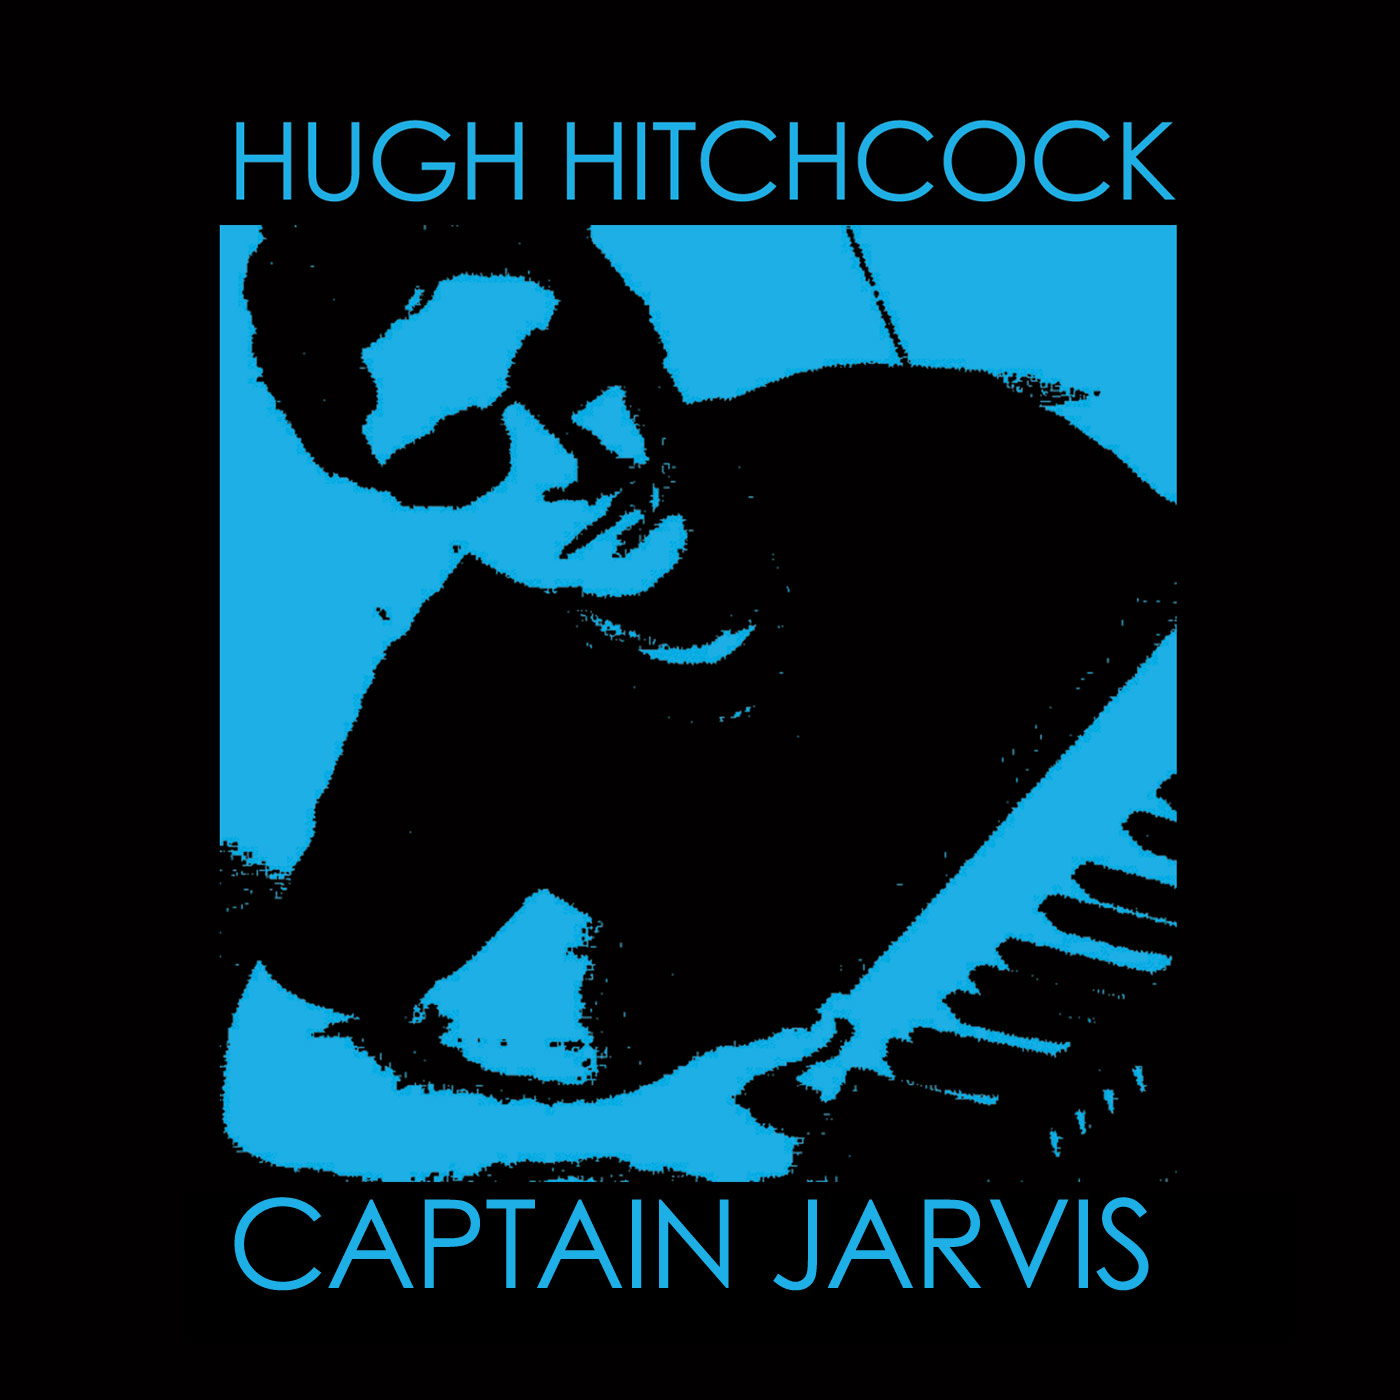 New Electric Jazz Funk Release Captain Jarvis by Hugh Hitchcock on Funkatology Records